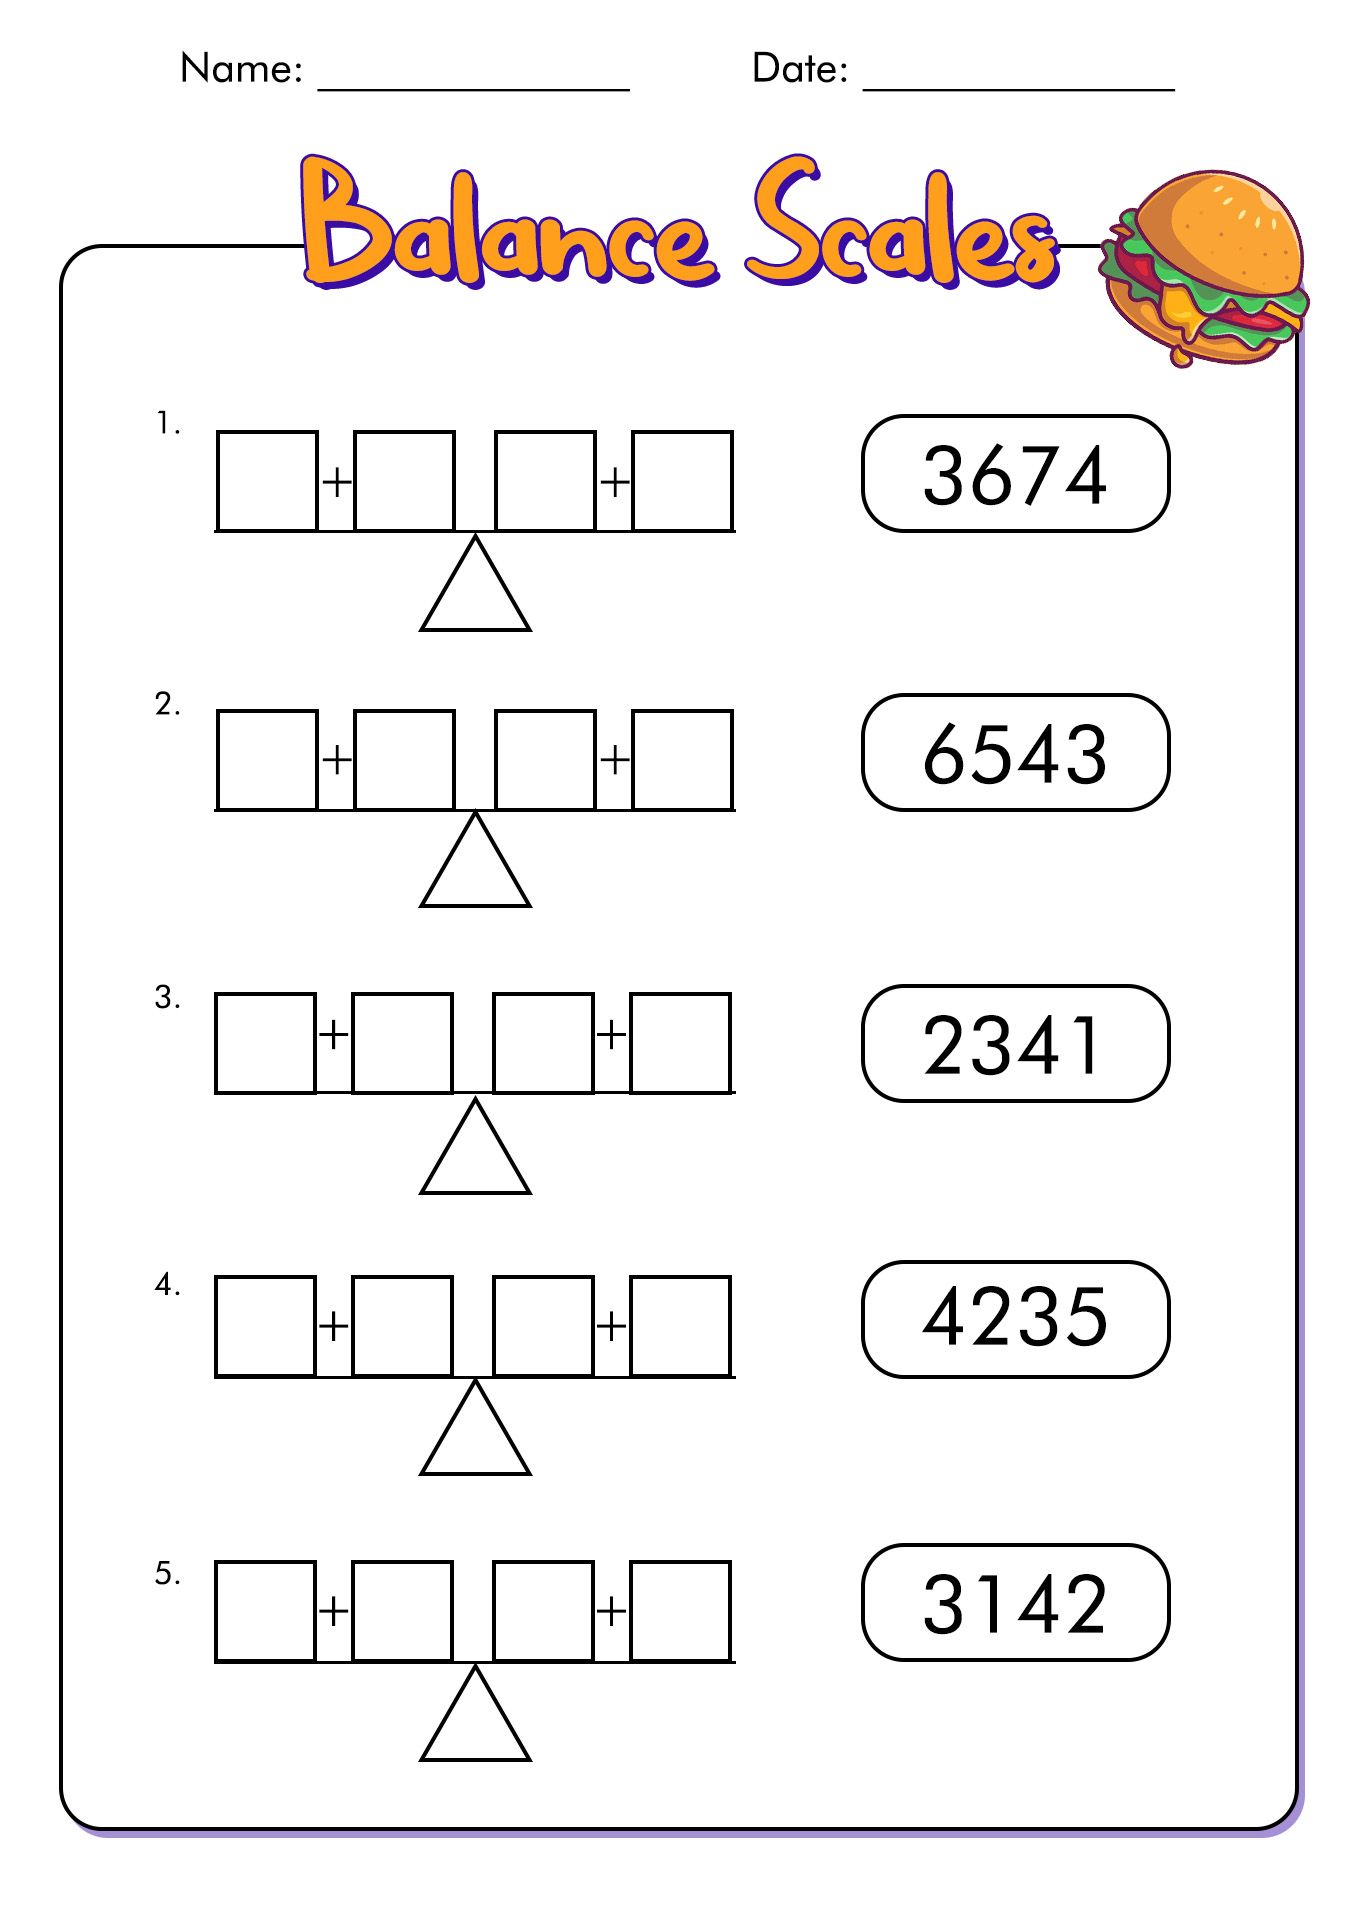 Scale Balance Worksheet Template